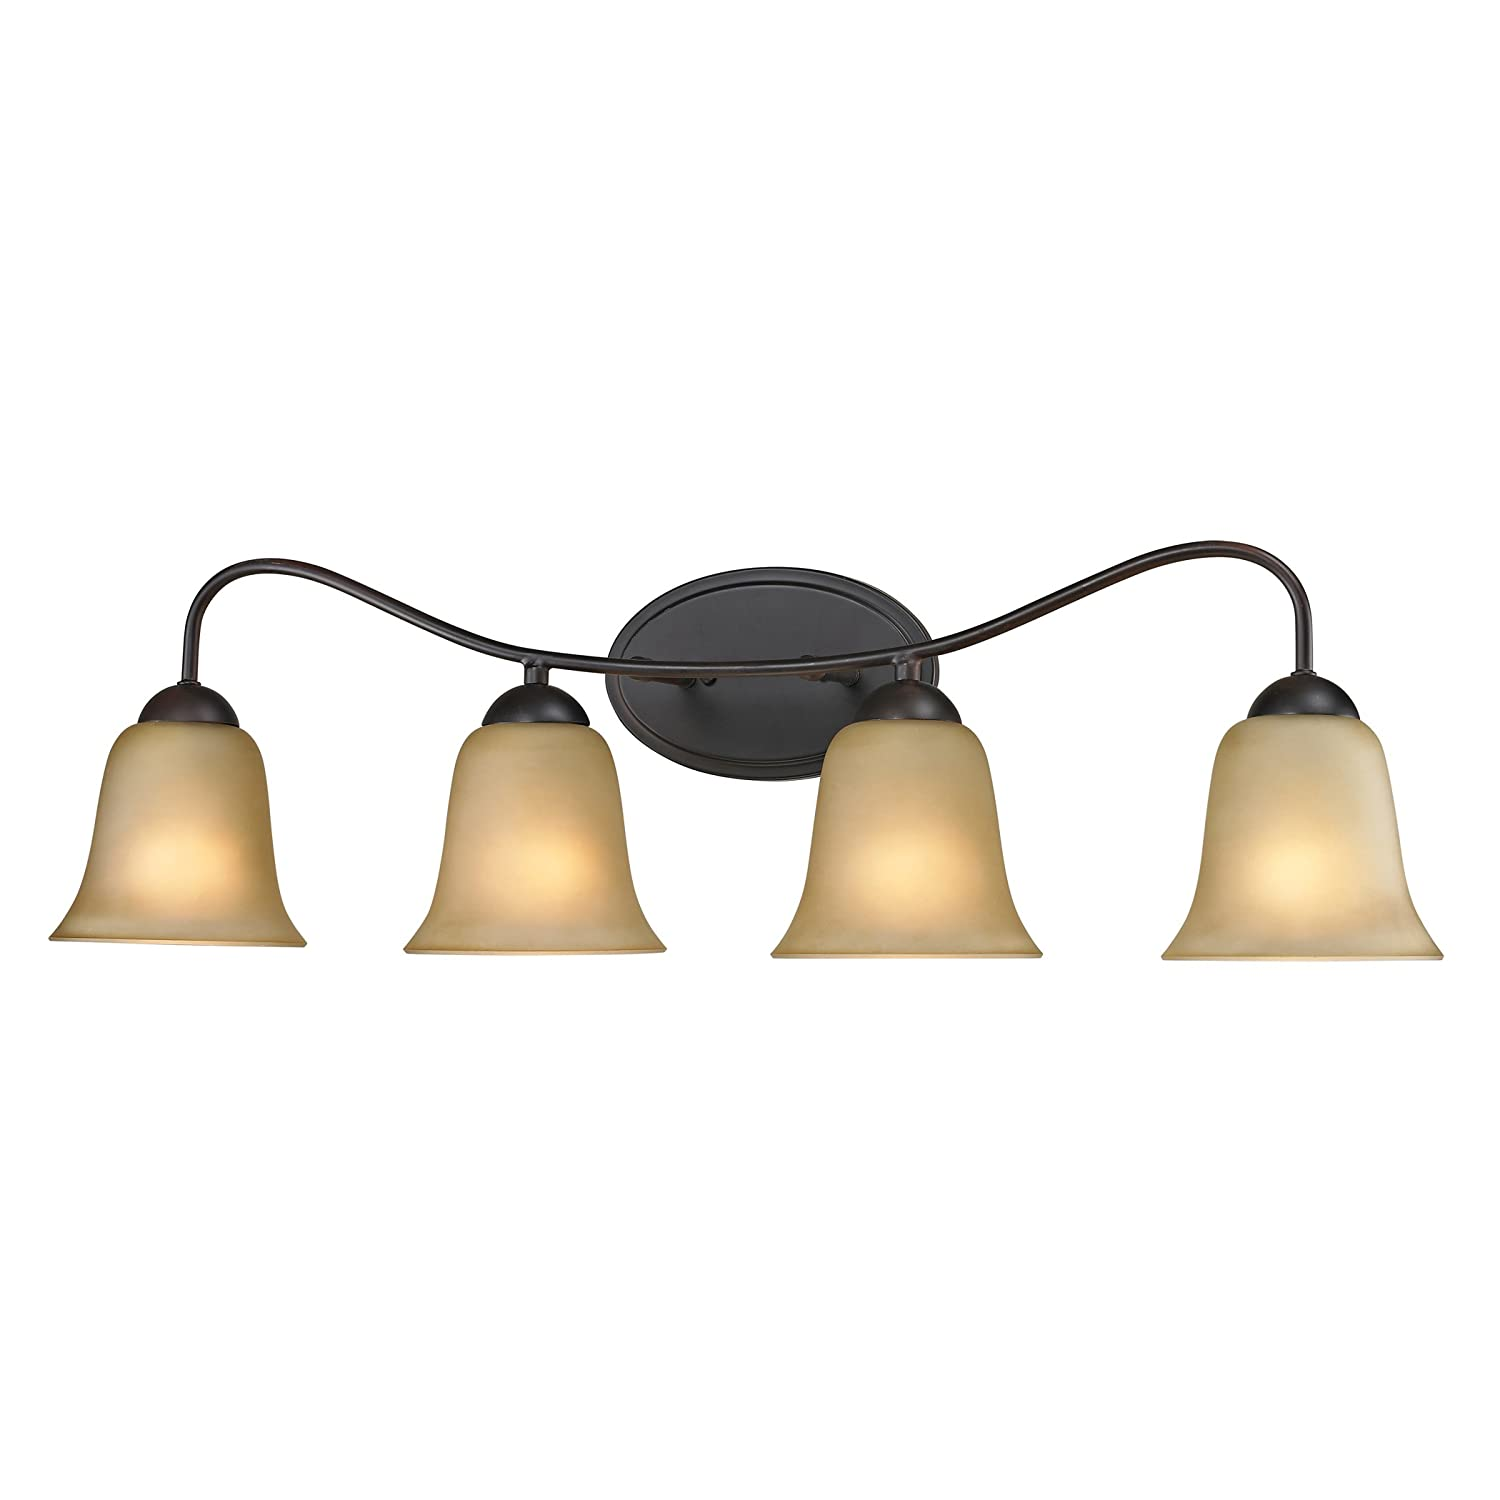 Cornerstone Lighting 1204BB 10 Conway 4 Light Bath Bar, Oil Rubbed Bronze